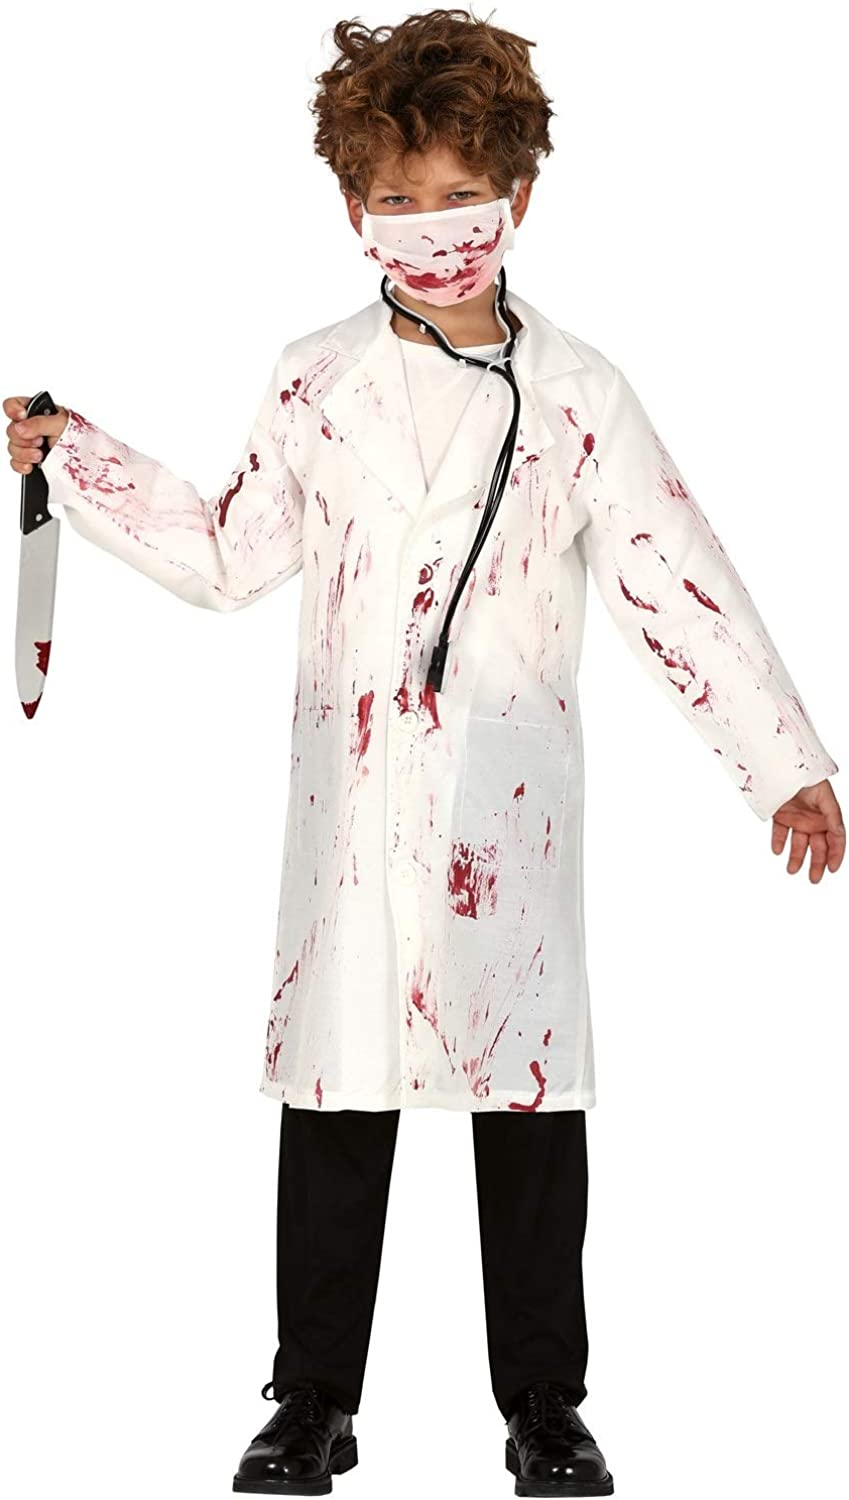 Childrens Boys Zombie Doctor Halloween Costume Fancy Dress Outfit